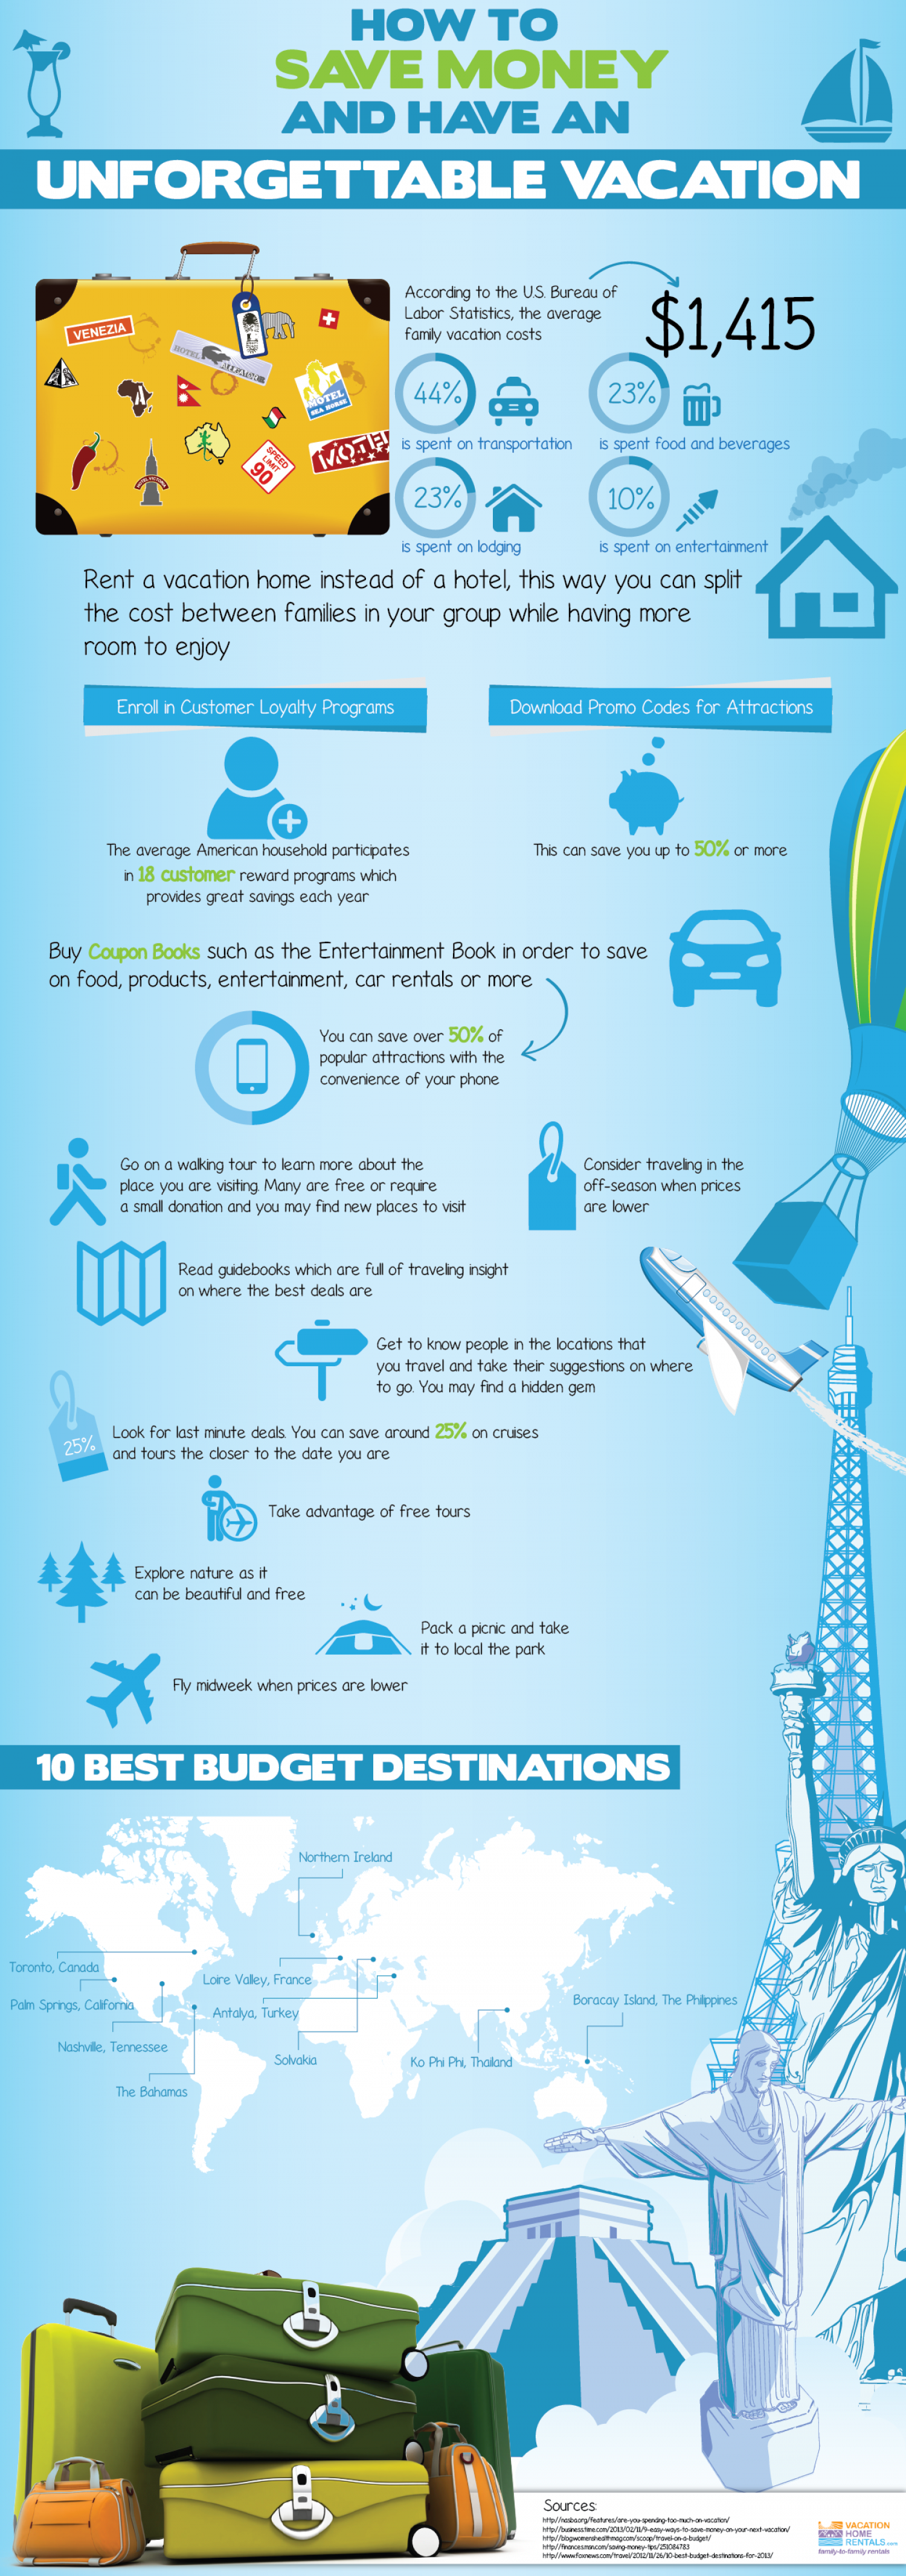 How to Save Money and Have An Unforgettable Vacation Infographic